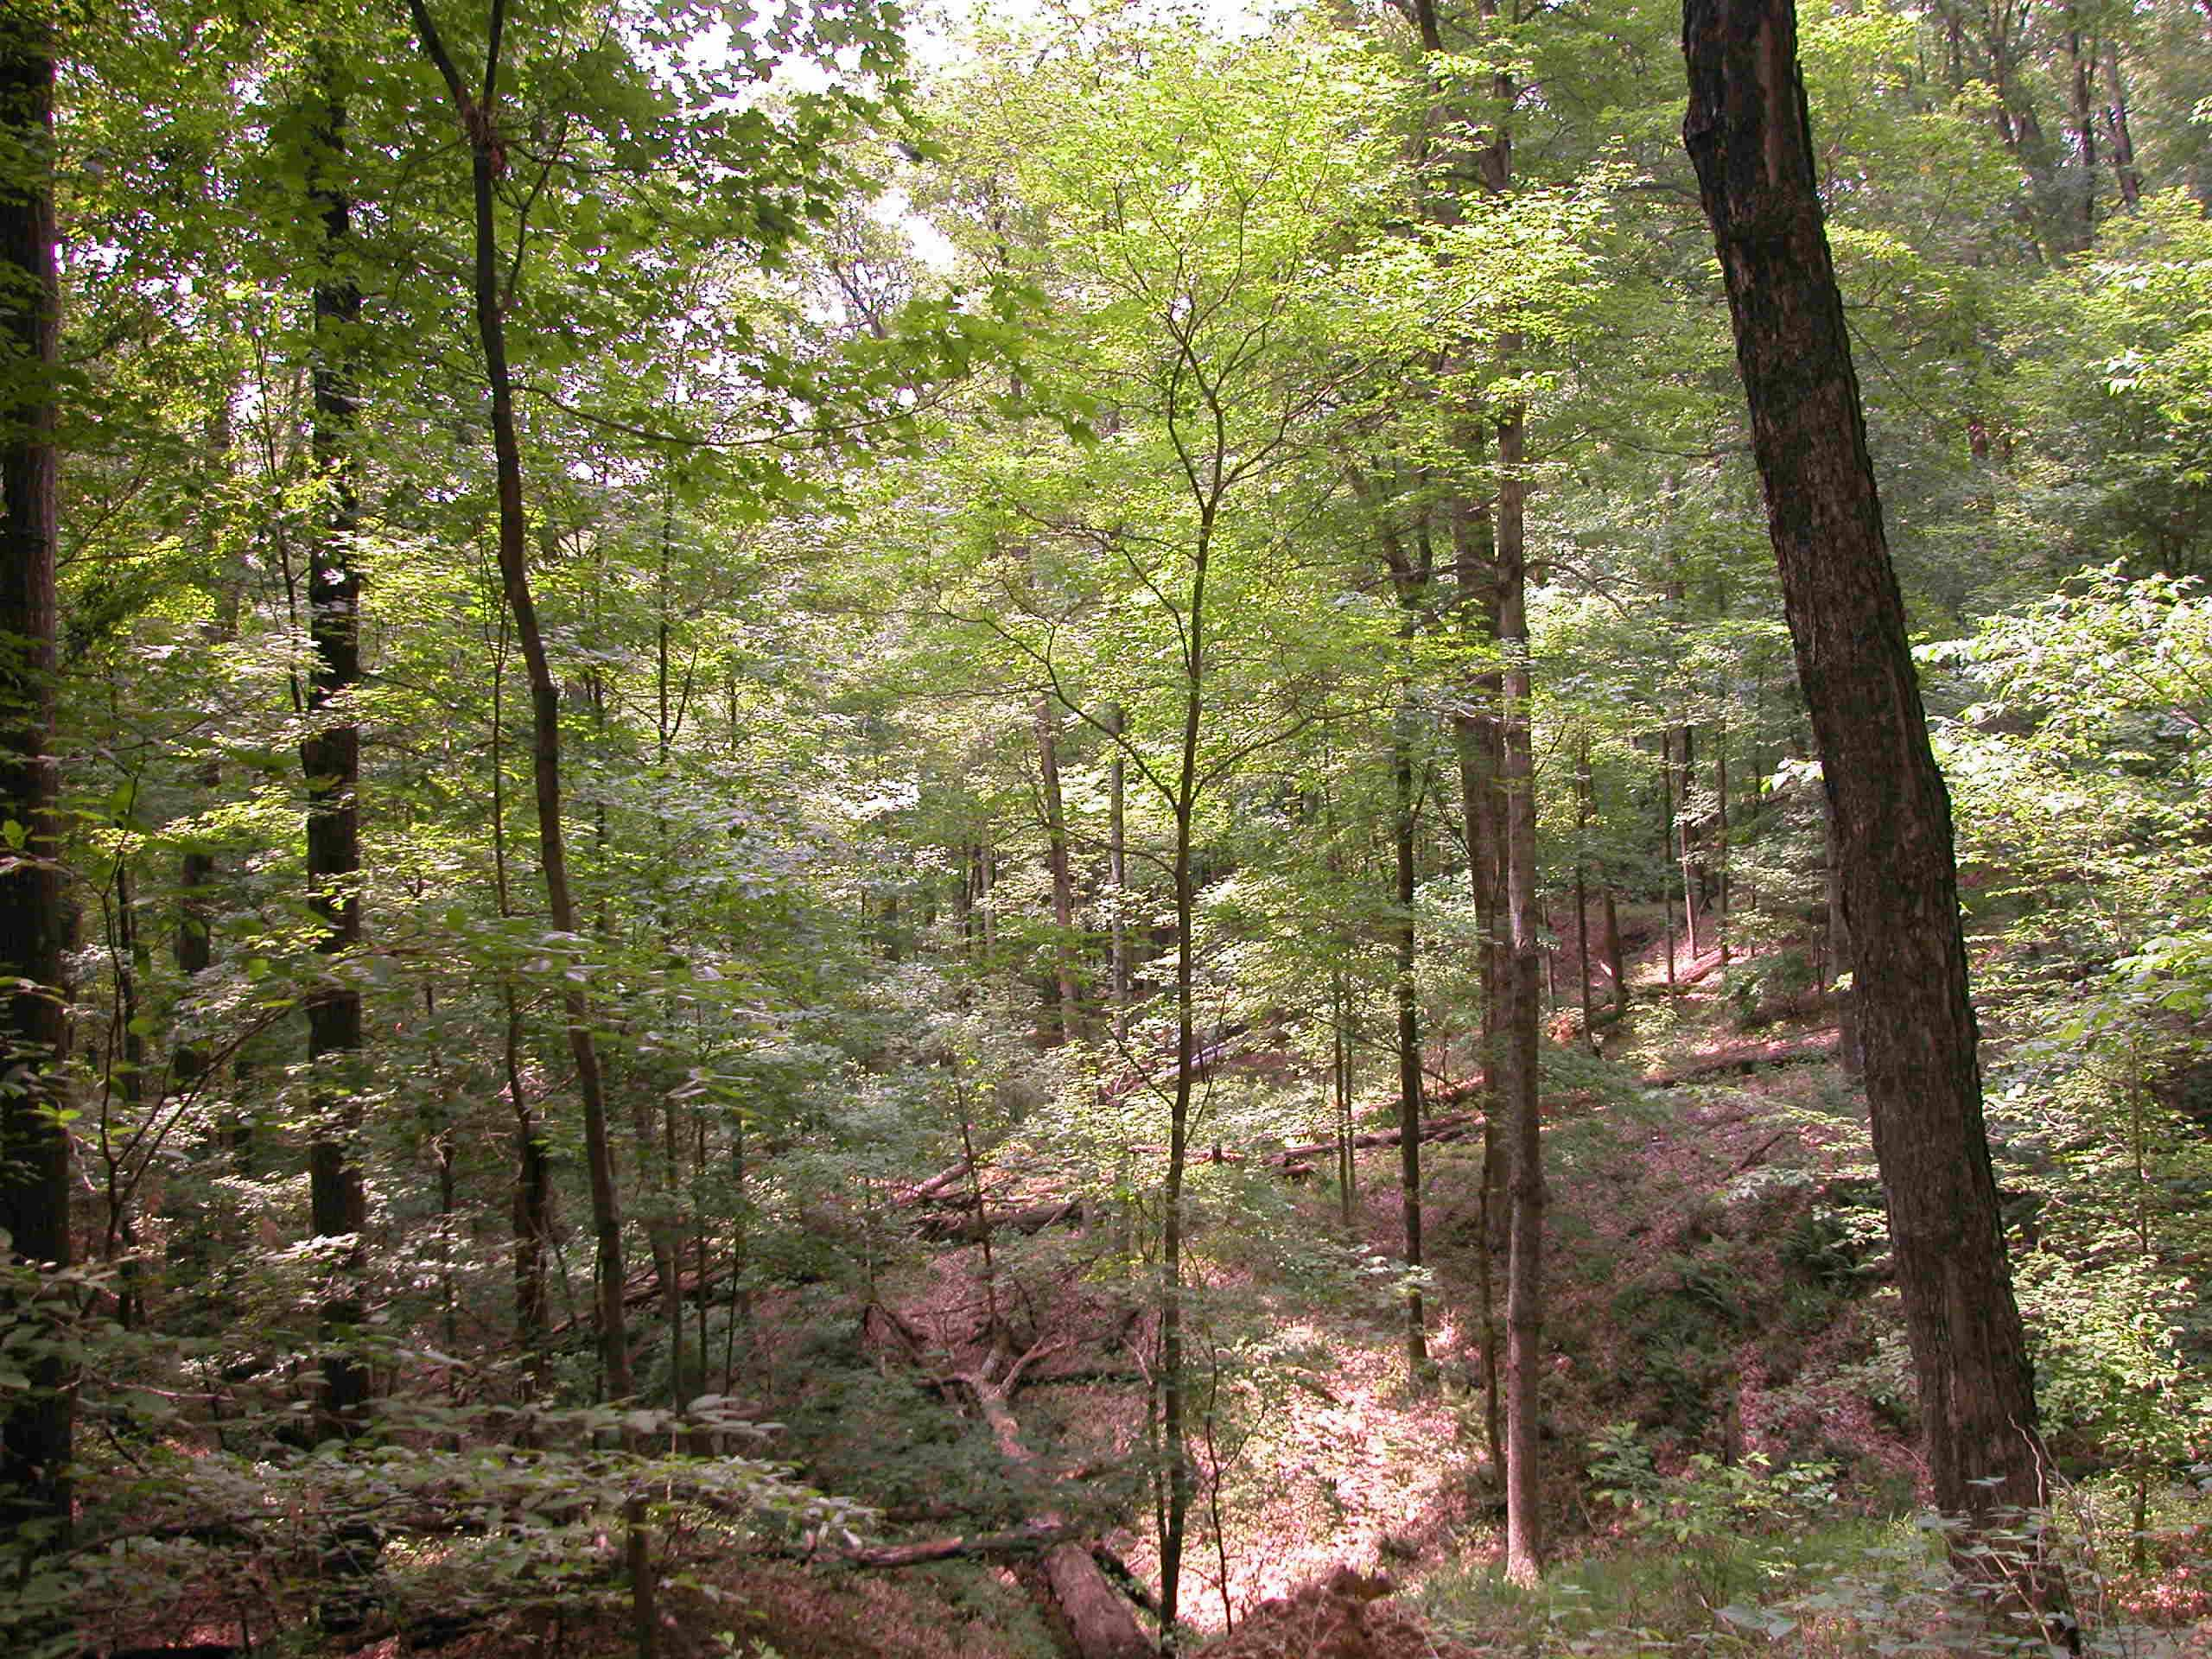 A ravine at Lilly-Dickey Woods.